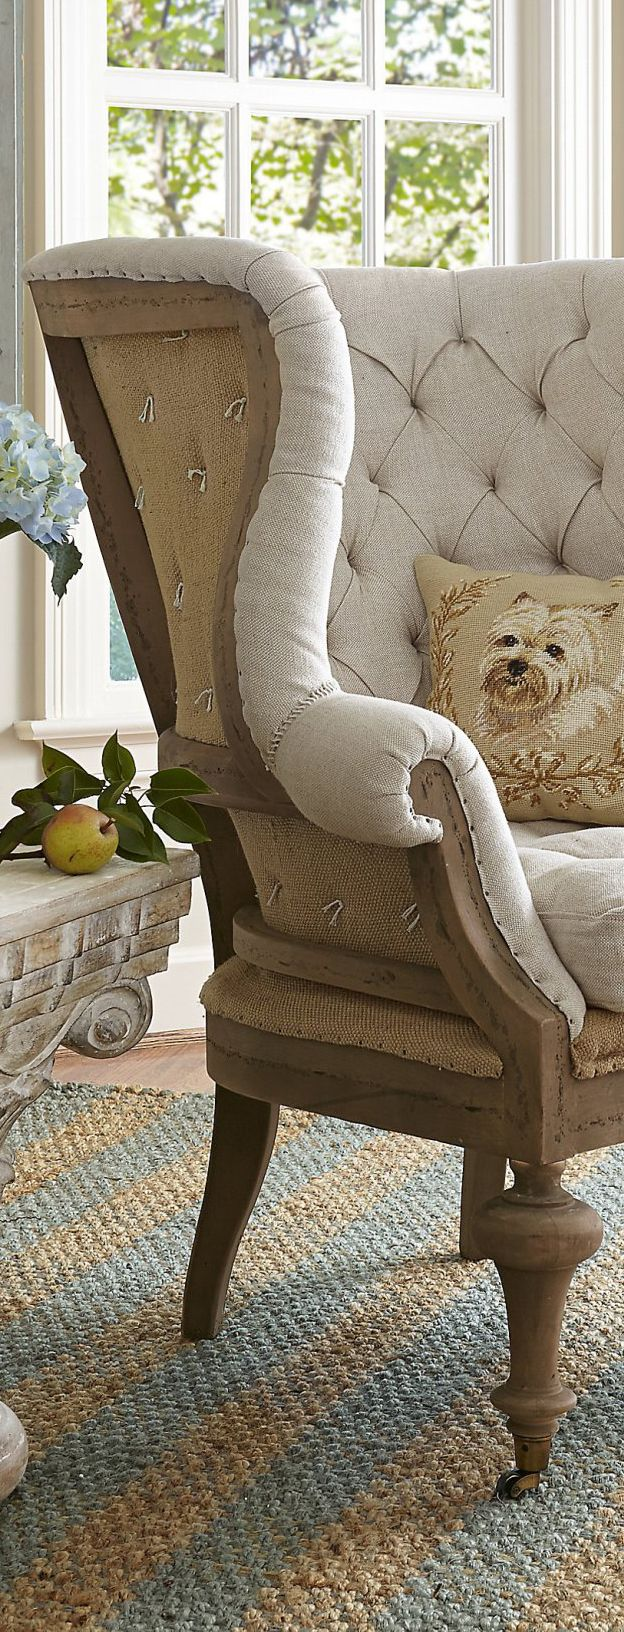 Best 191 Furniture ideas on Pinterest | Home ideas, Armchairs and Chairs